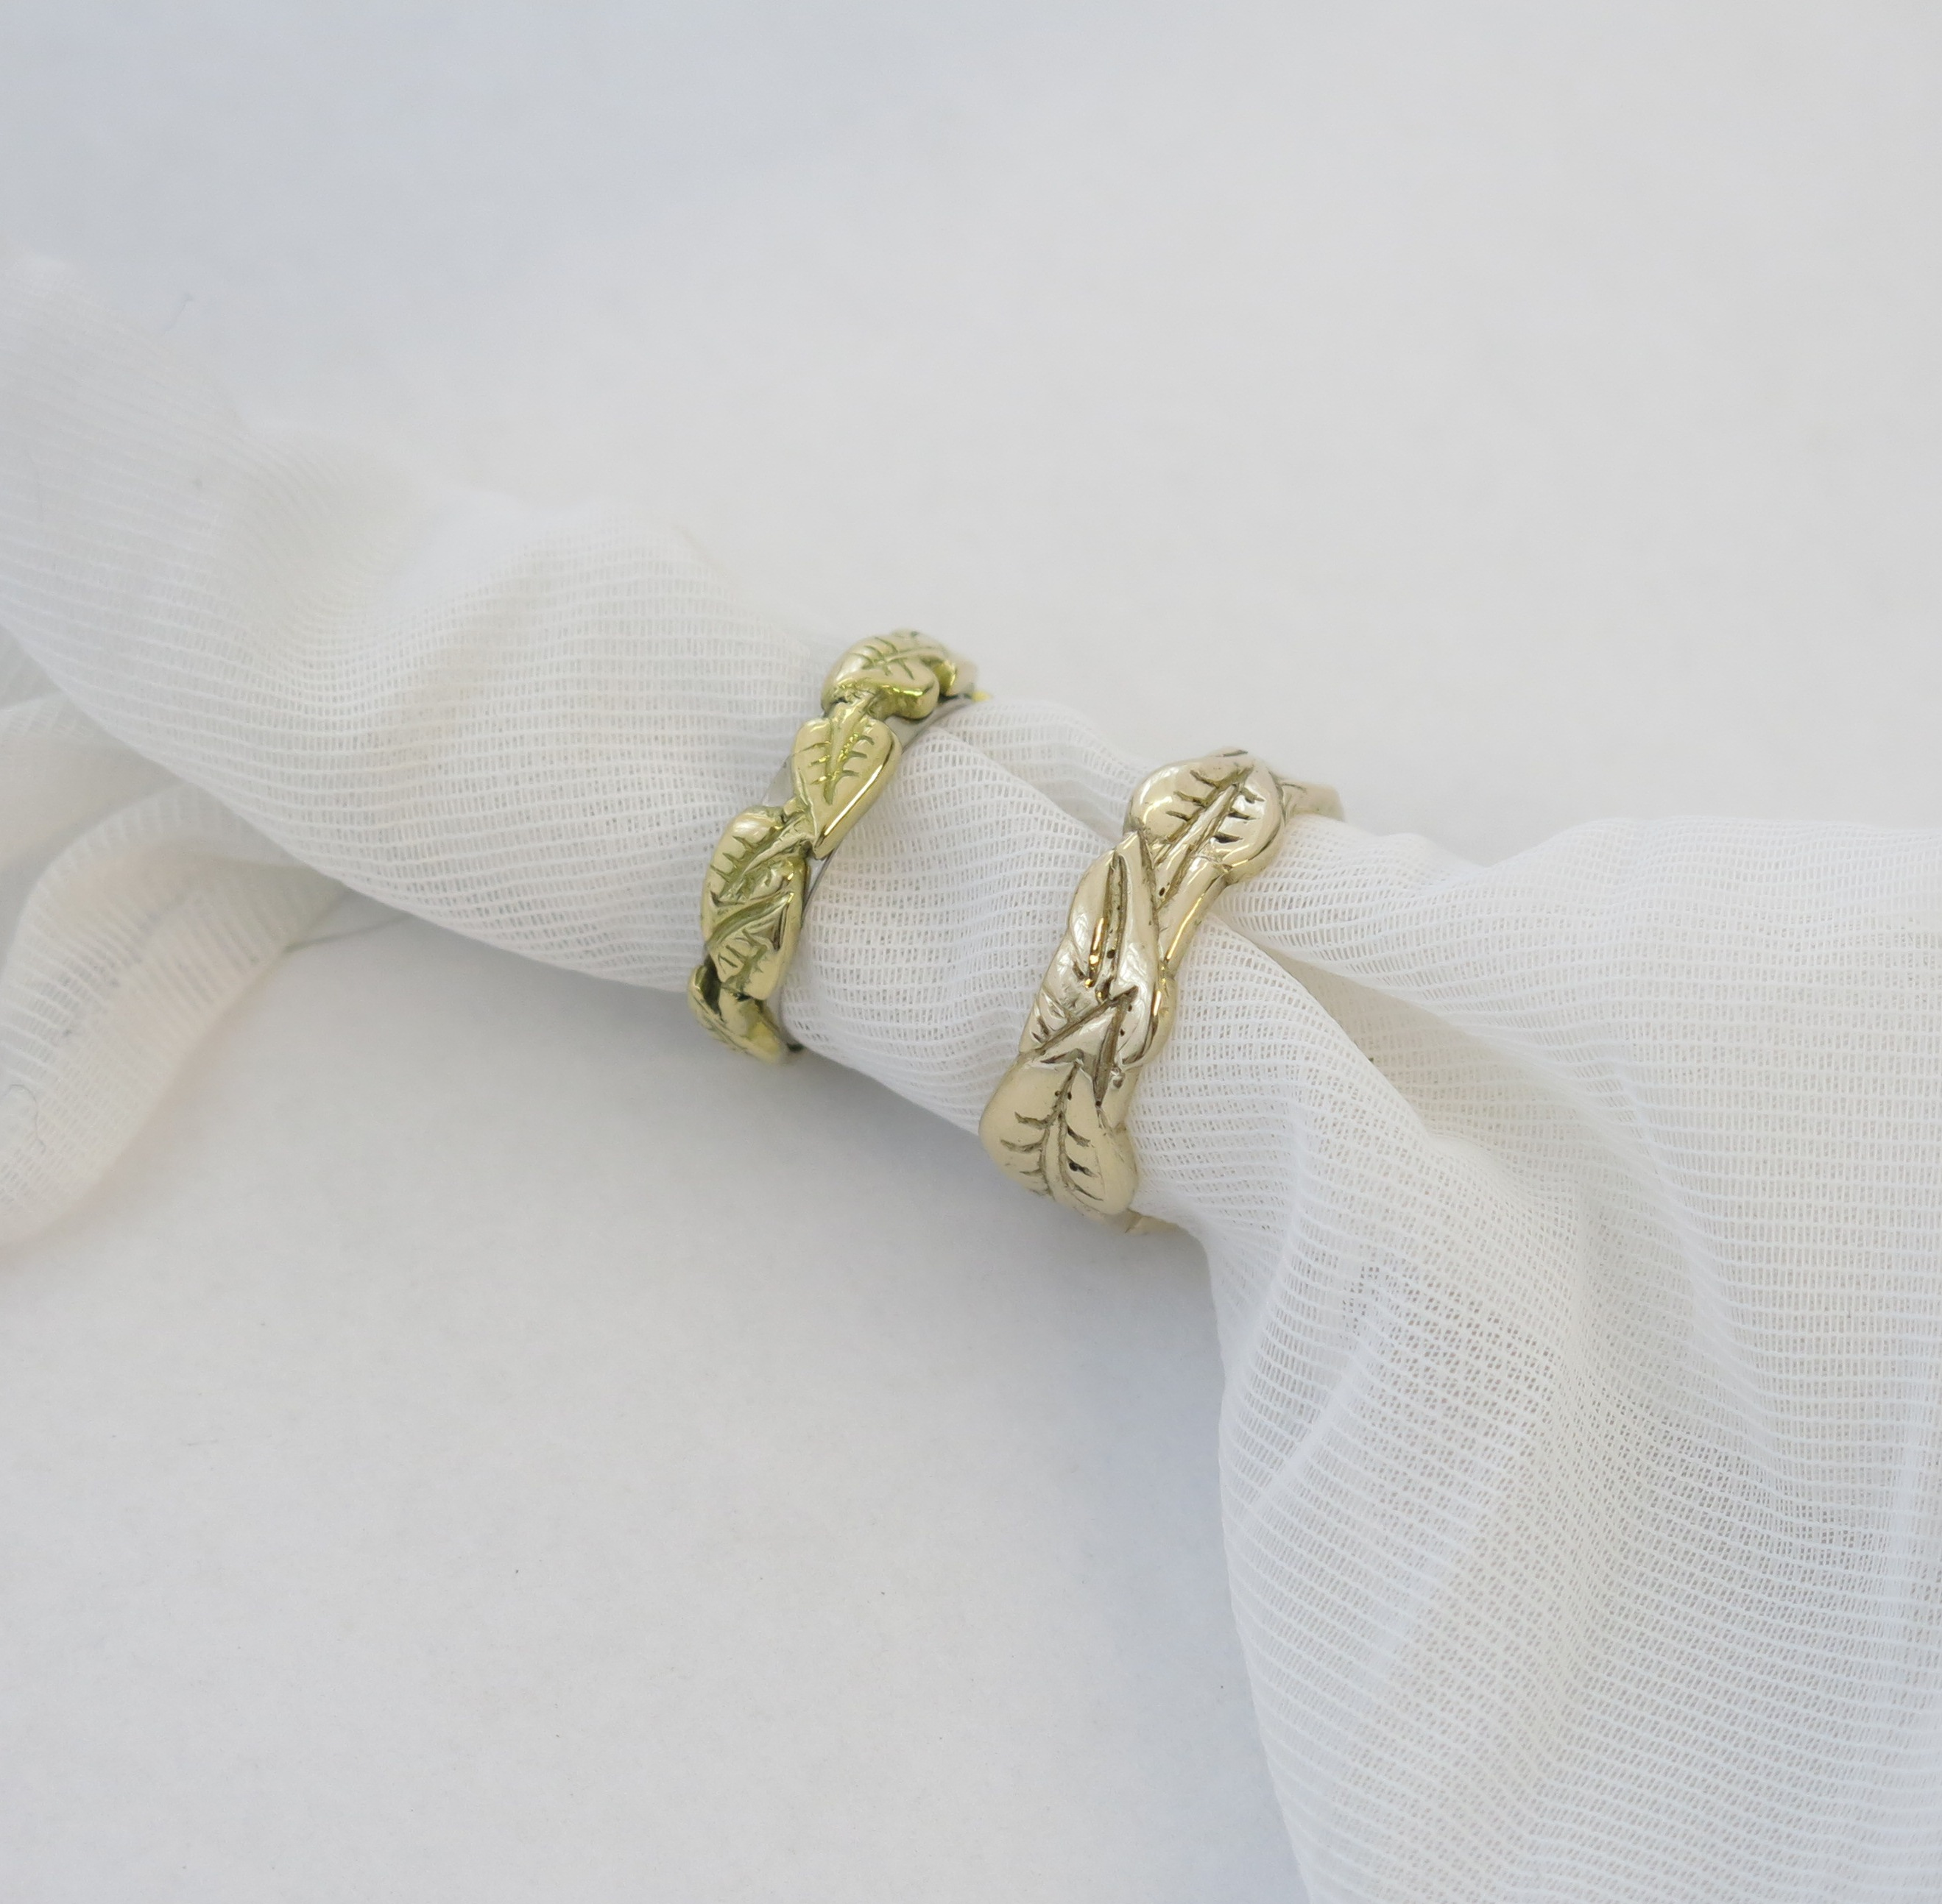 Gold wedding rings with leaf design